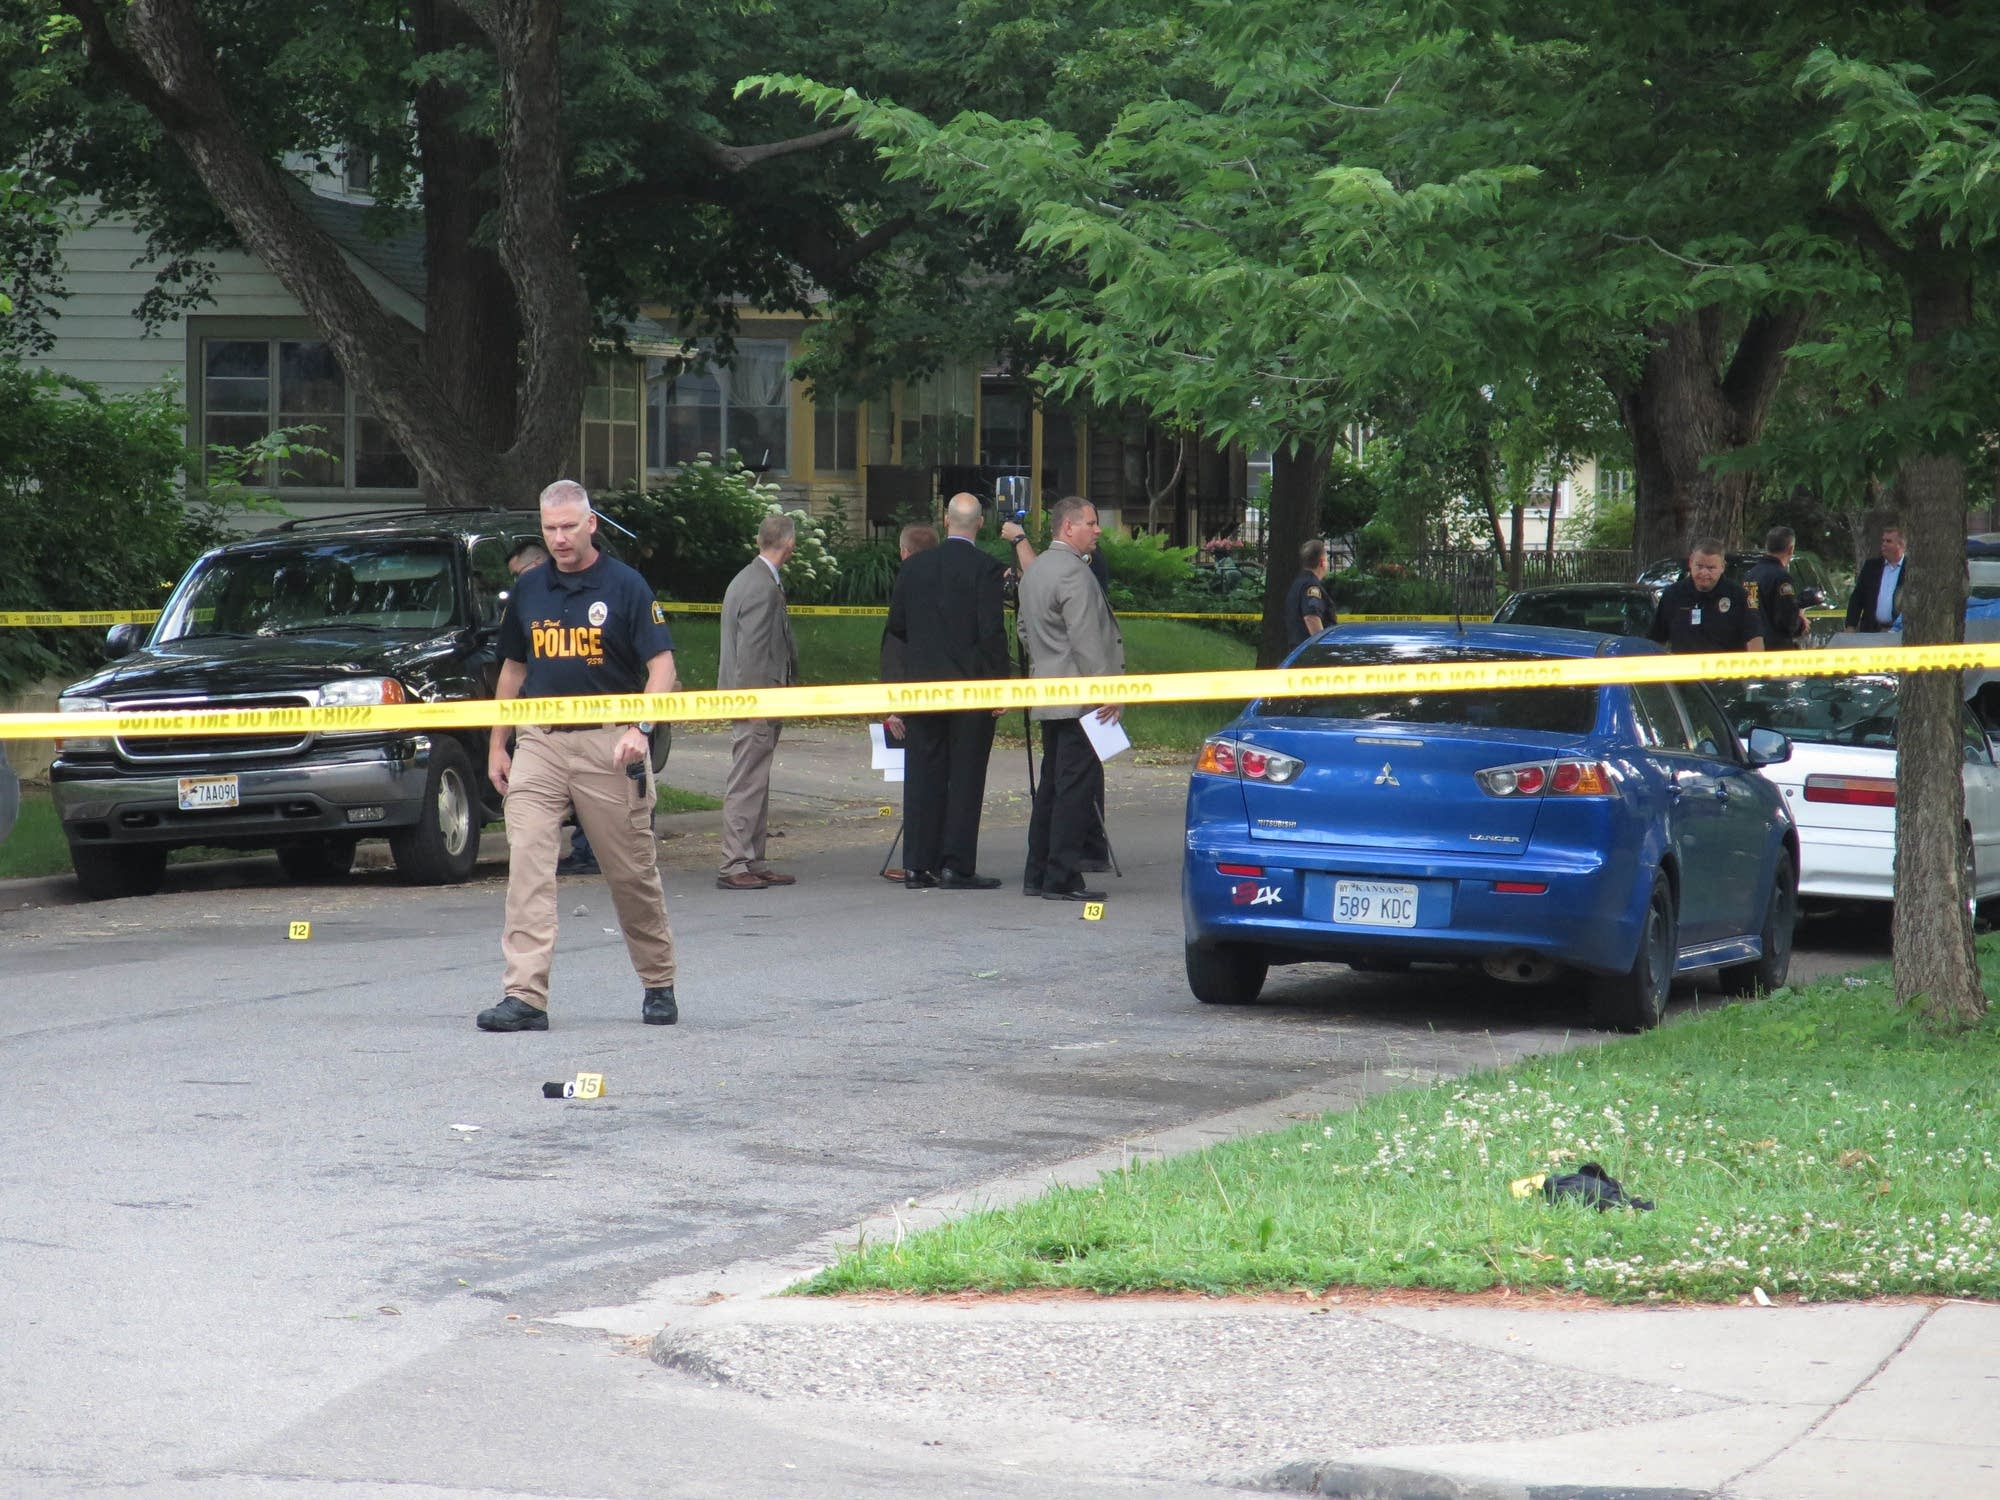 Girl Suffers Gunshot Wound to Head in St. Paul, 2 Others Hurt